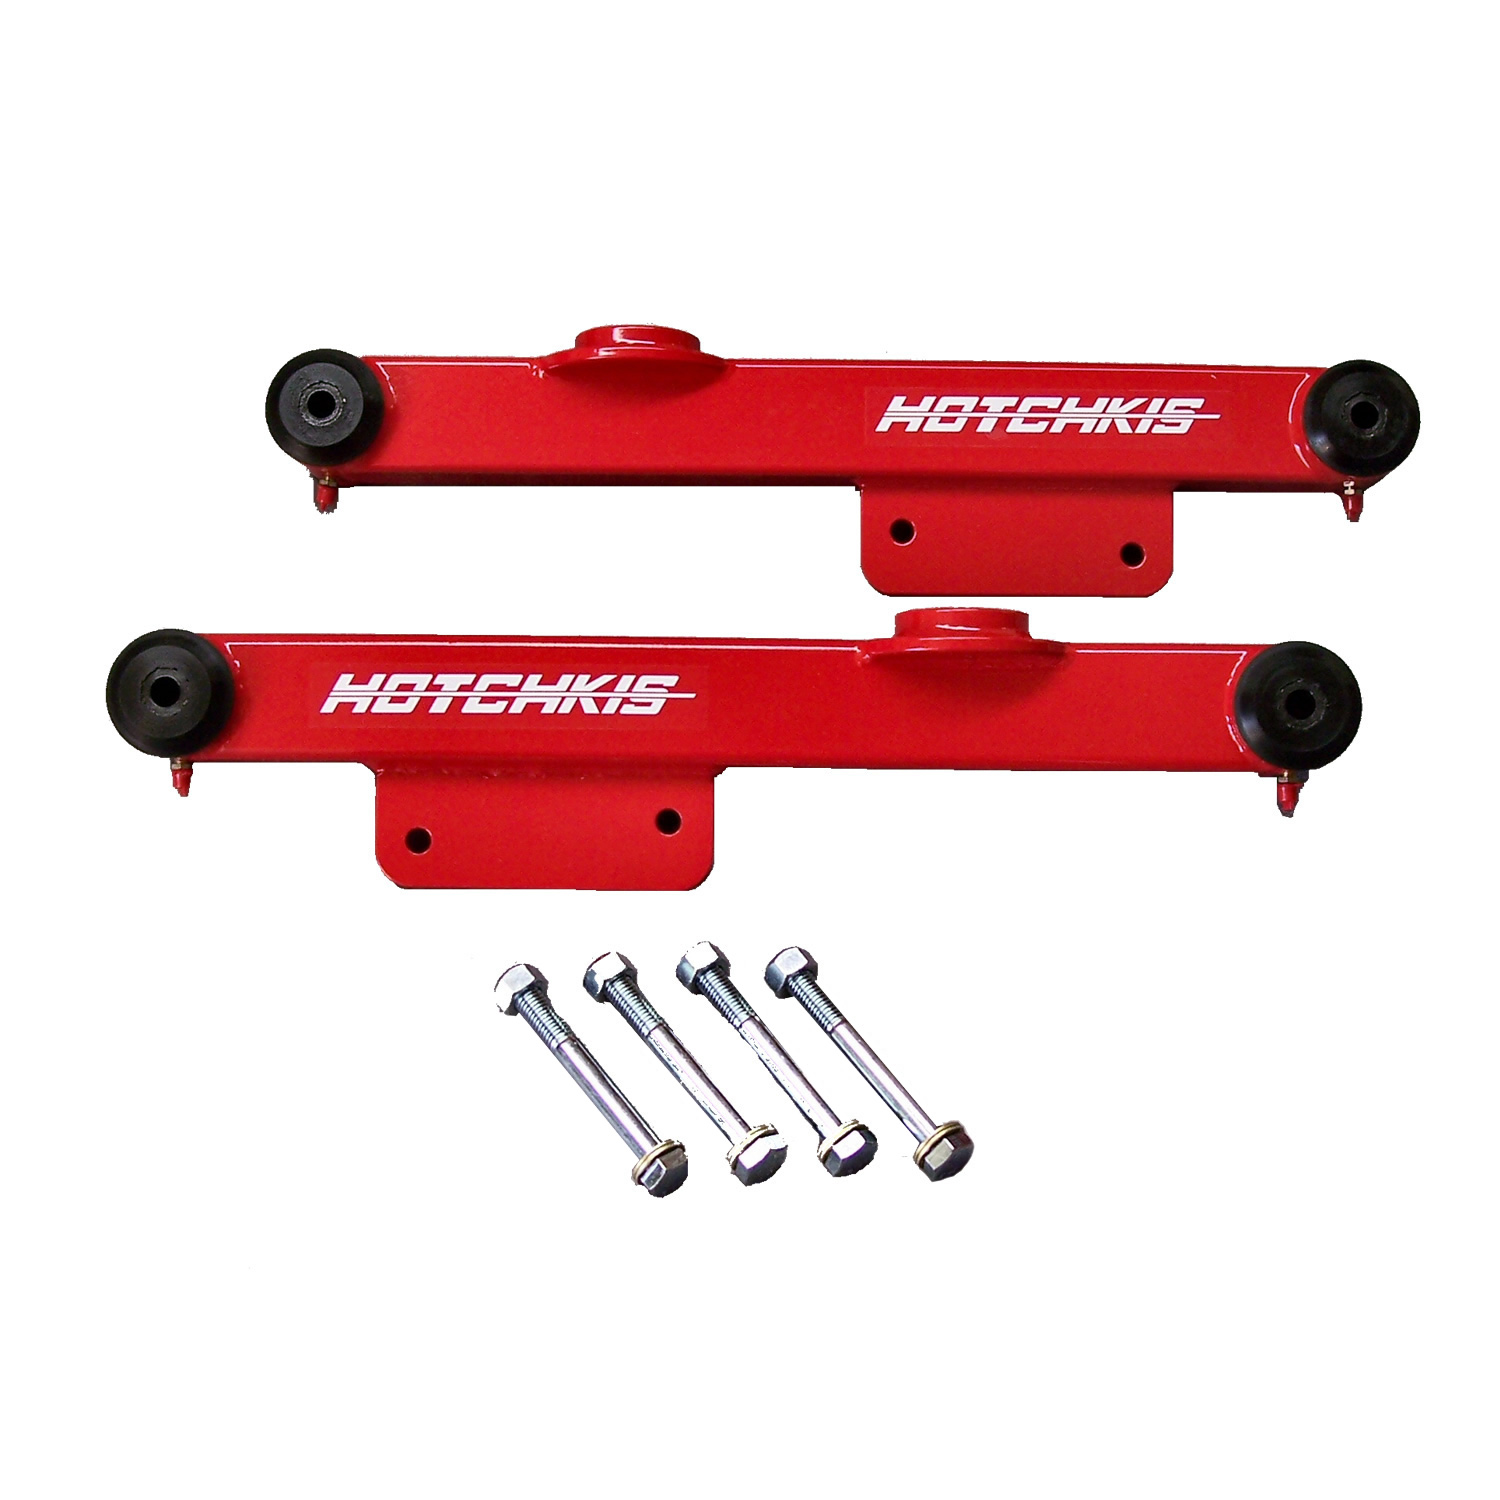 1999-2003 Mustang Lower Trailing Arms  Red – from Hotchkis Sport Suspension